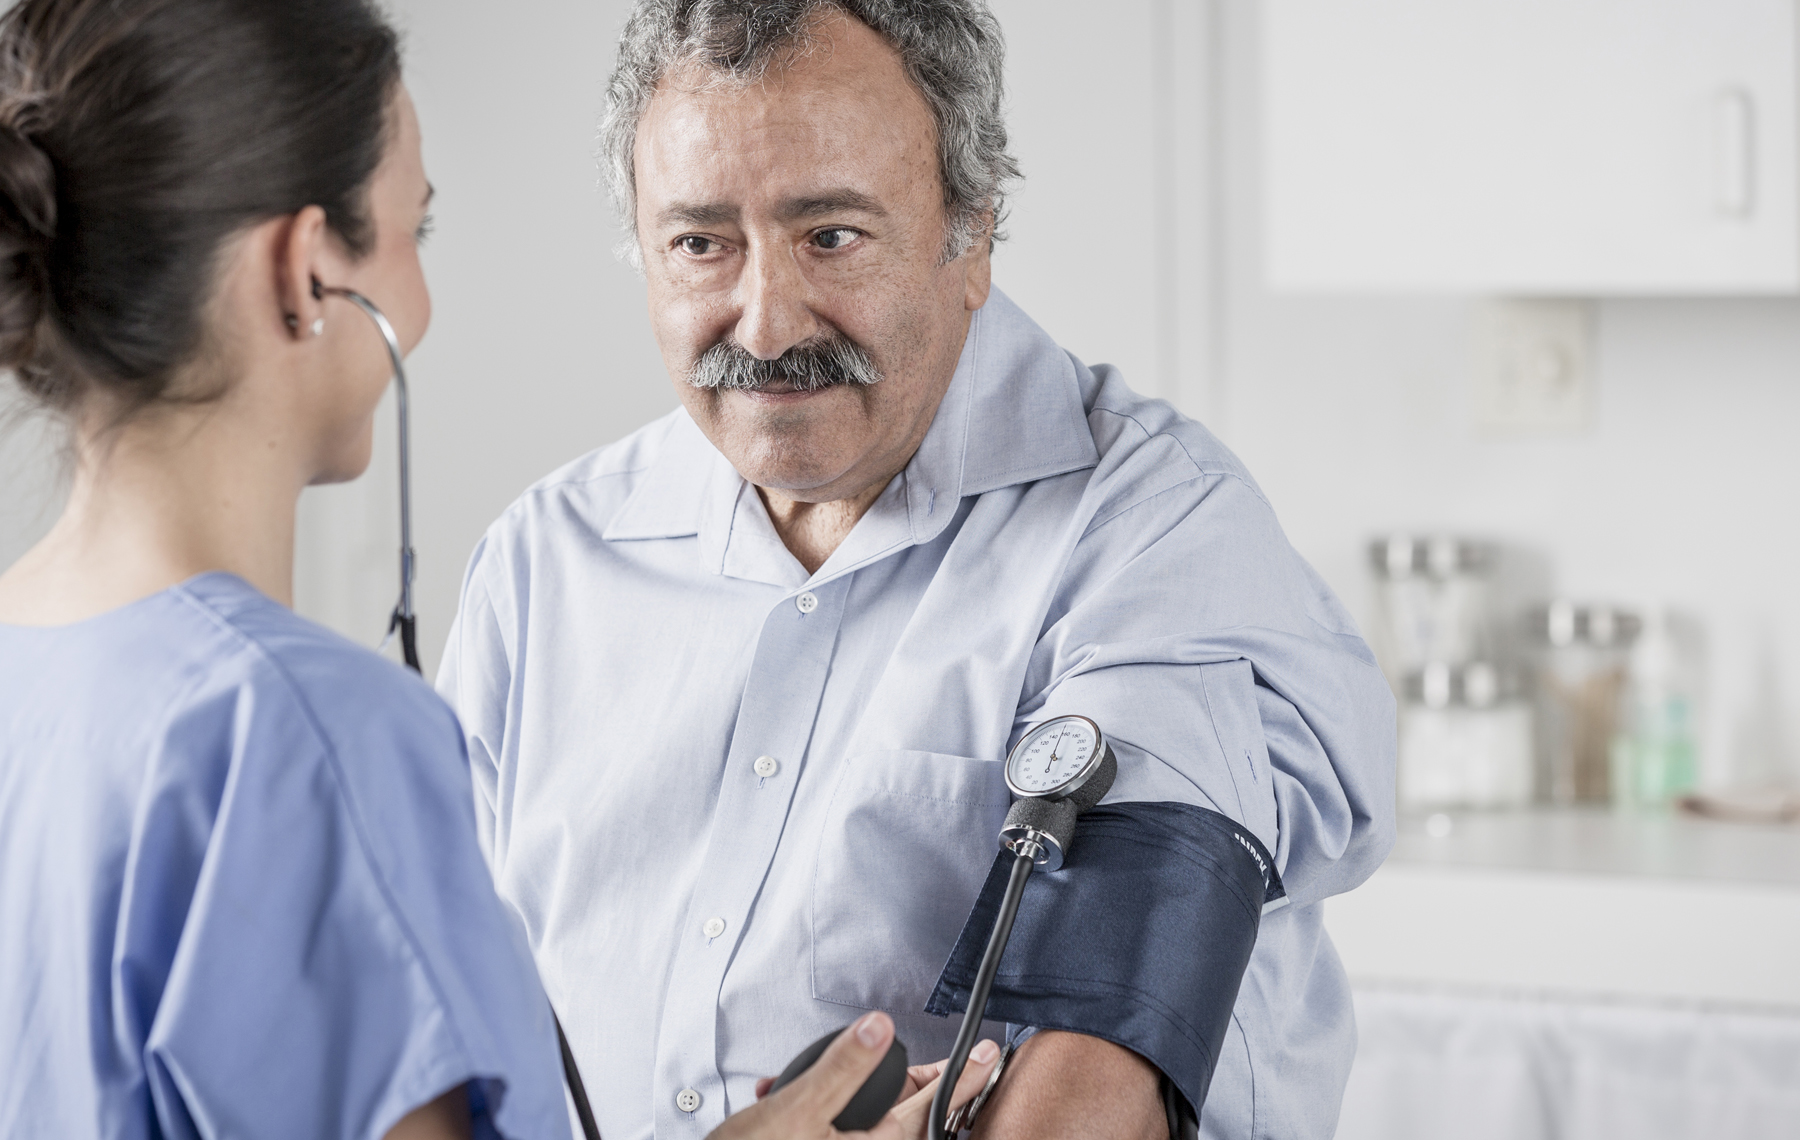 AltaMed man getting blood pressure checked